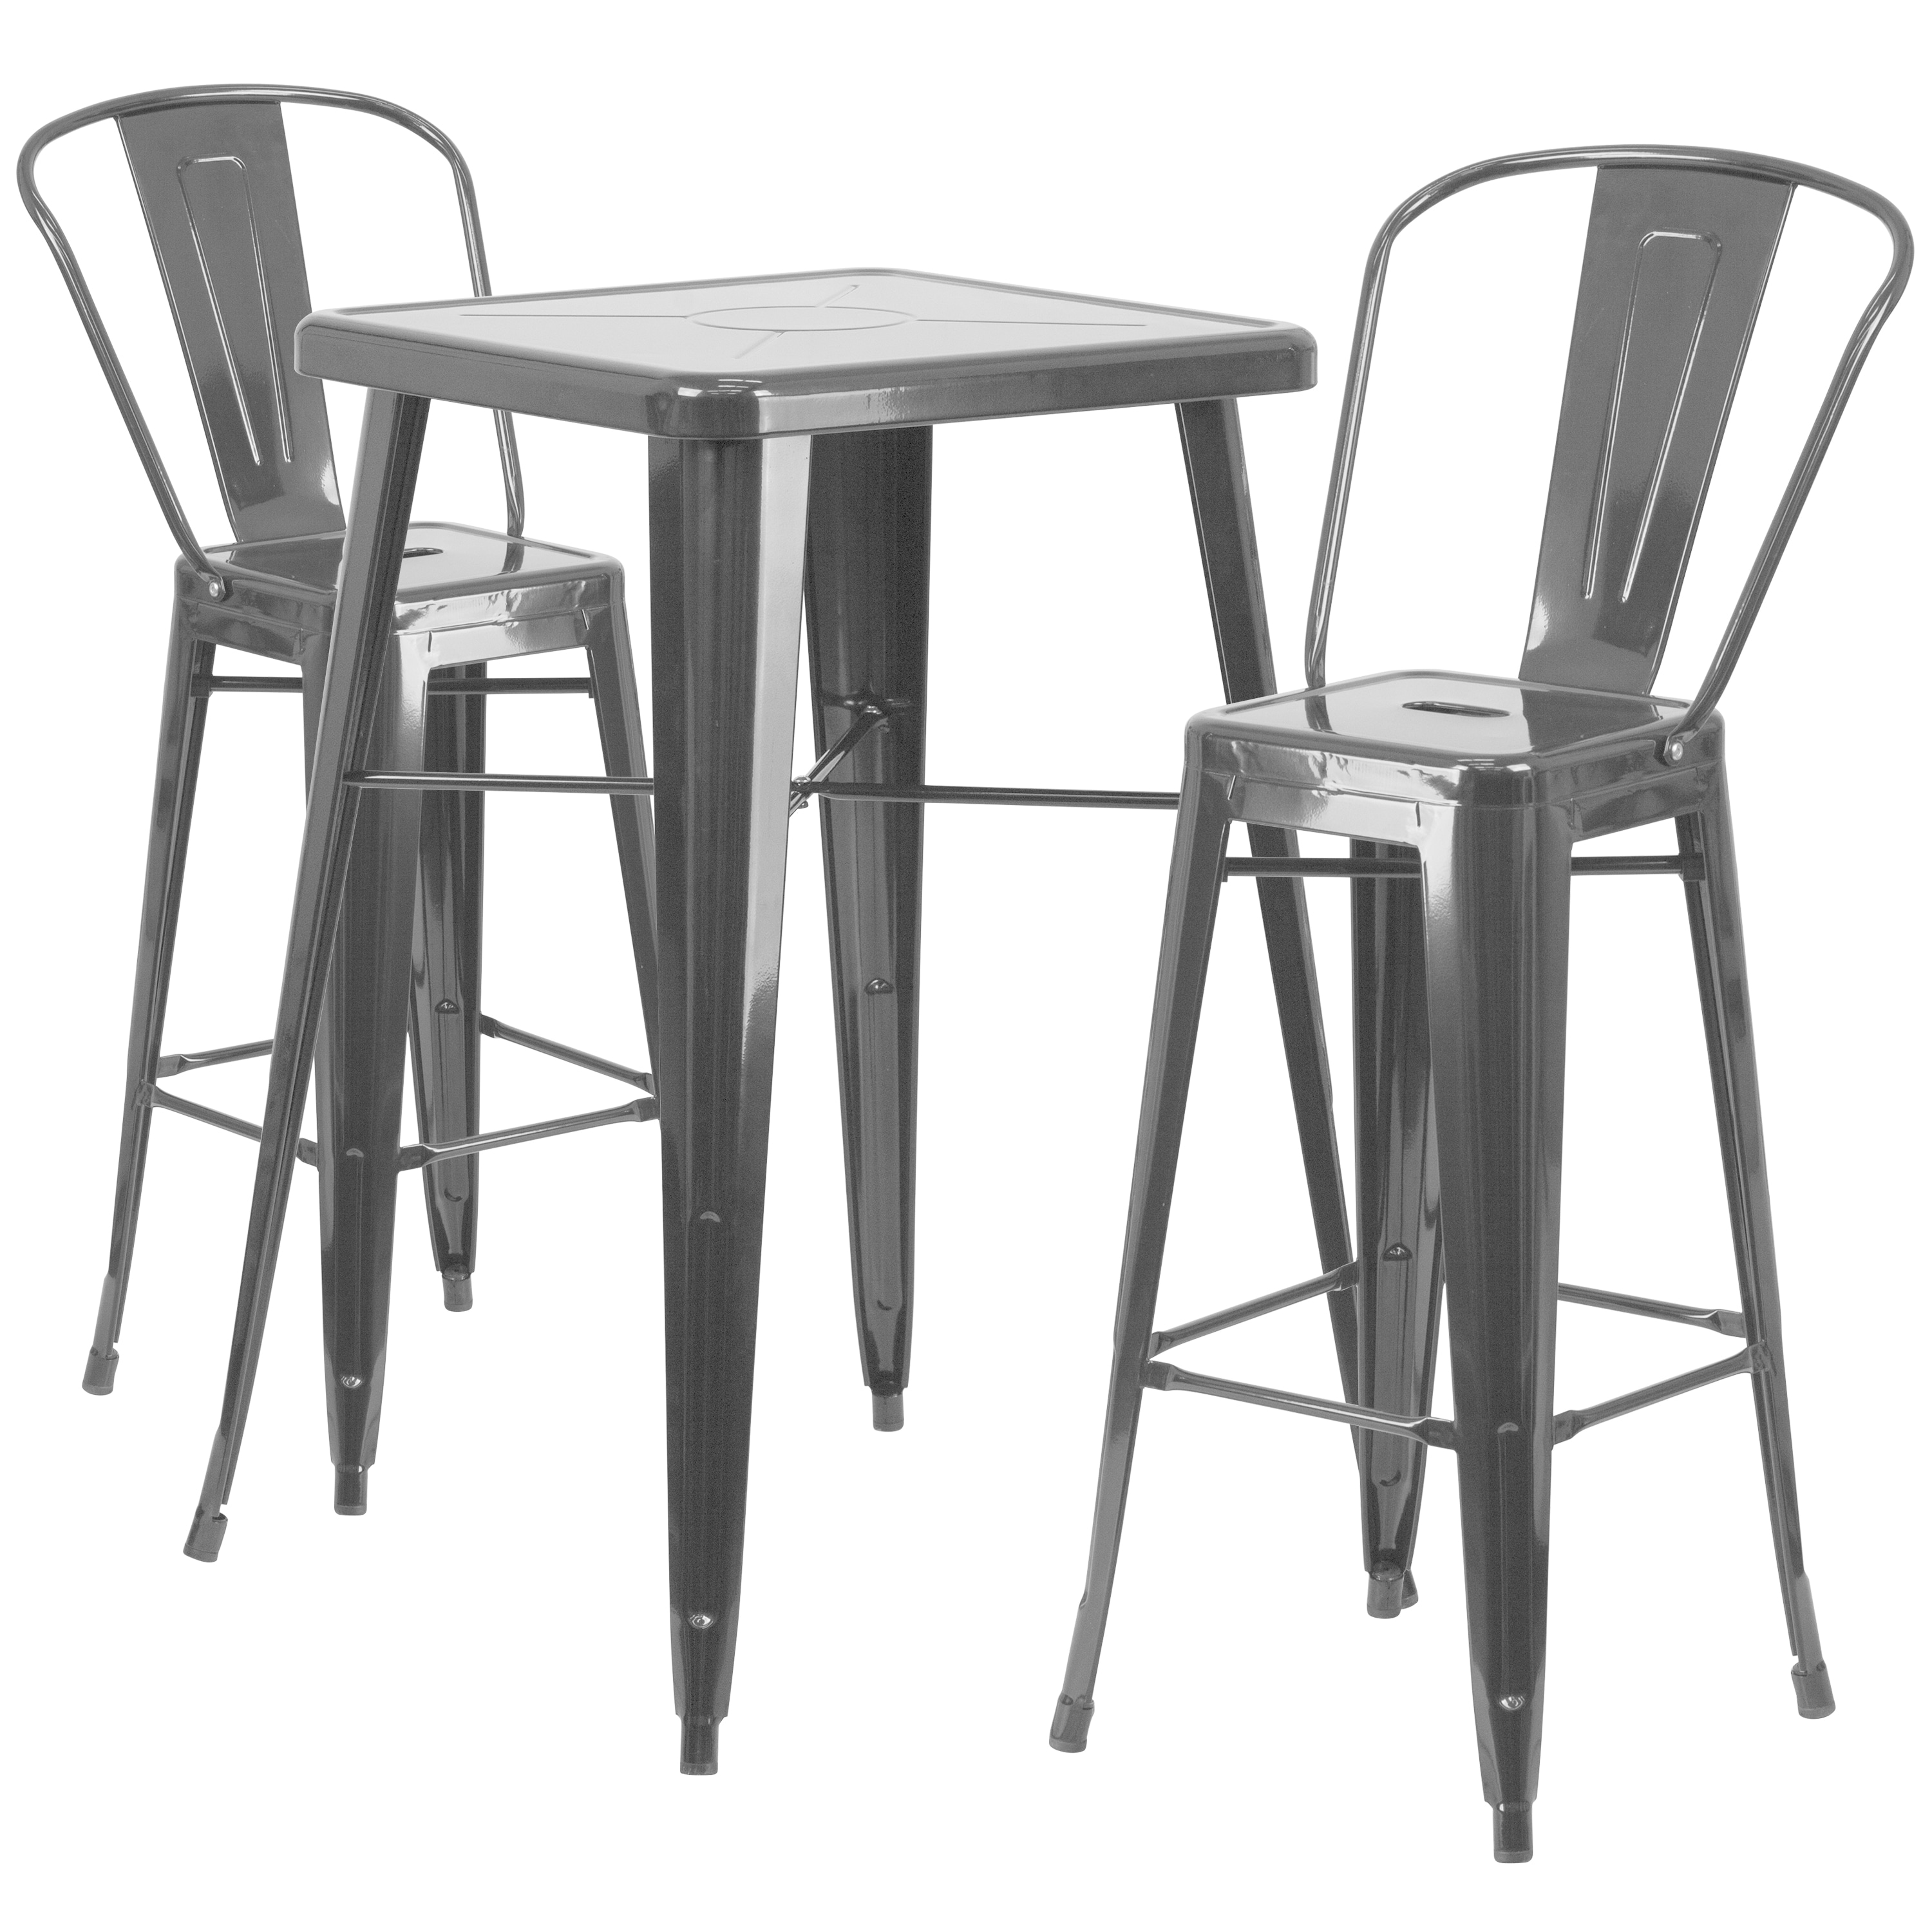 Shop Metal Indoor-Outdoor Bar Table Set with 2 Barstools - Free ...